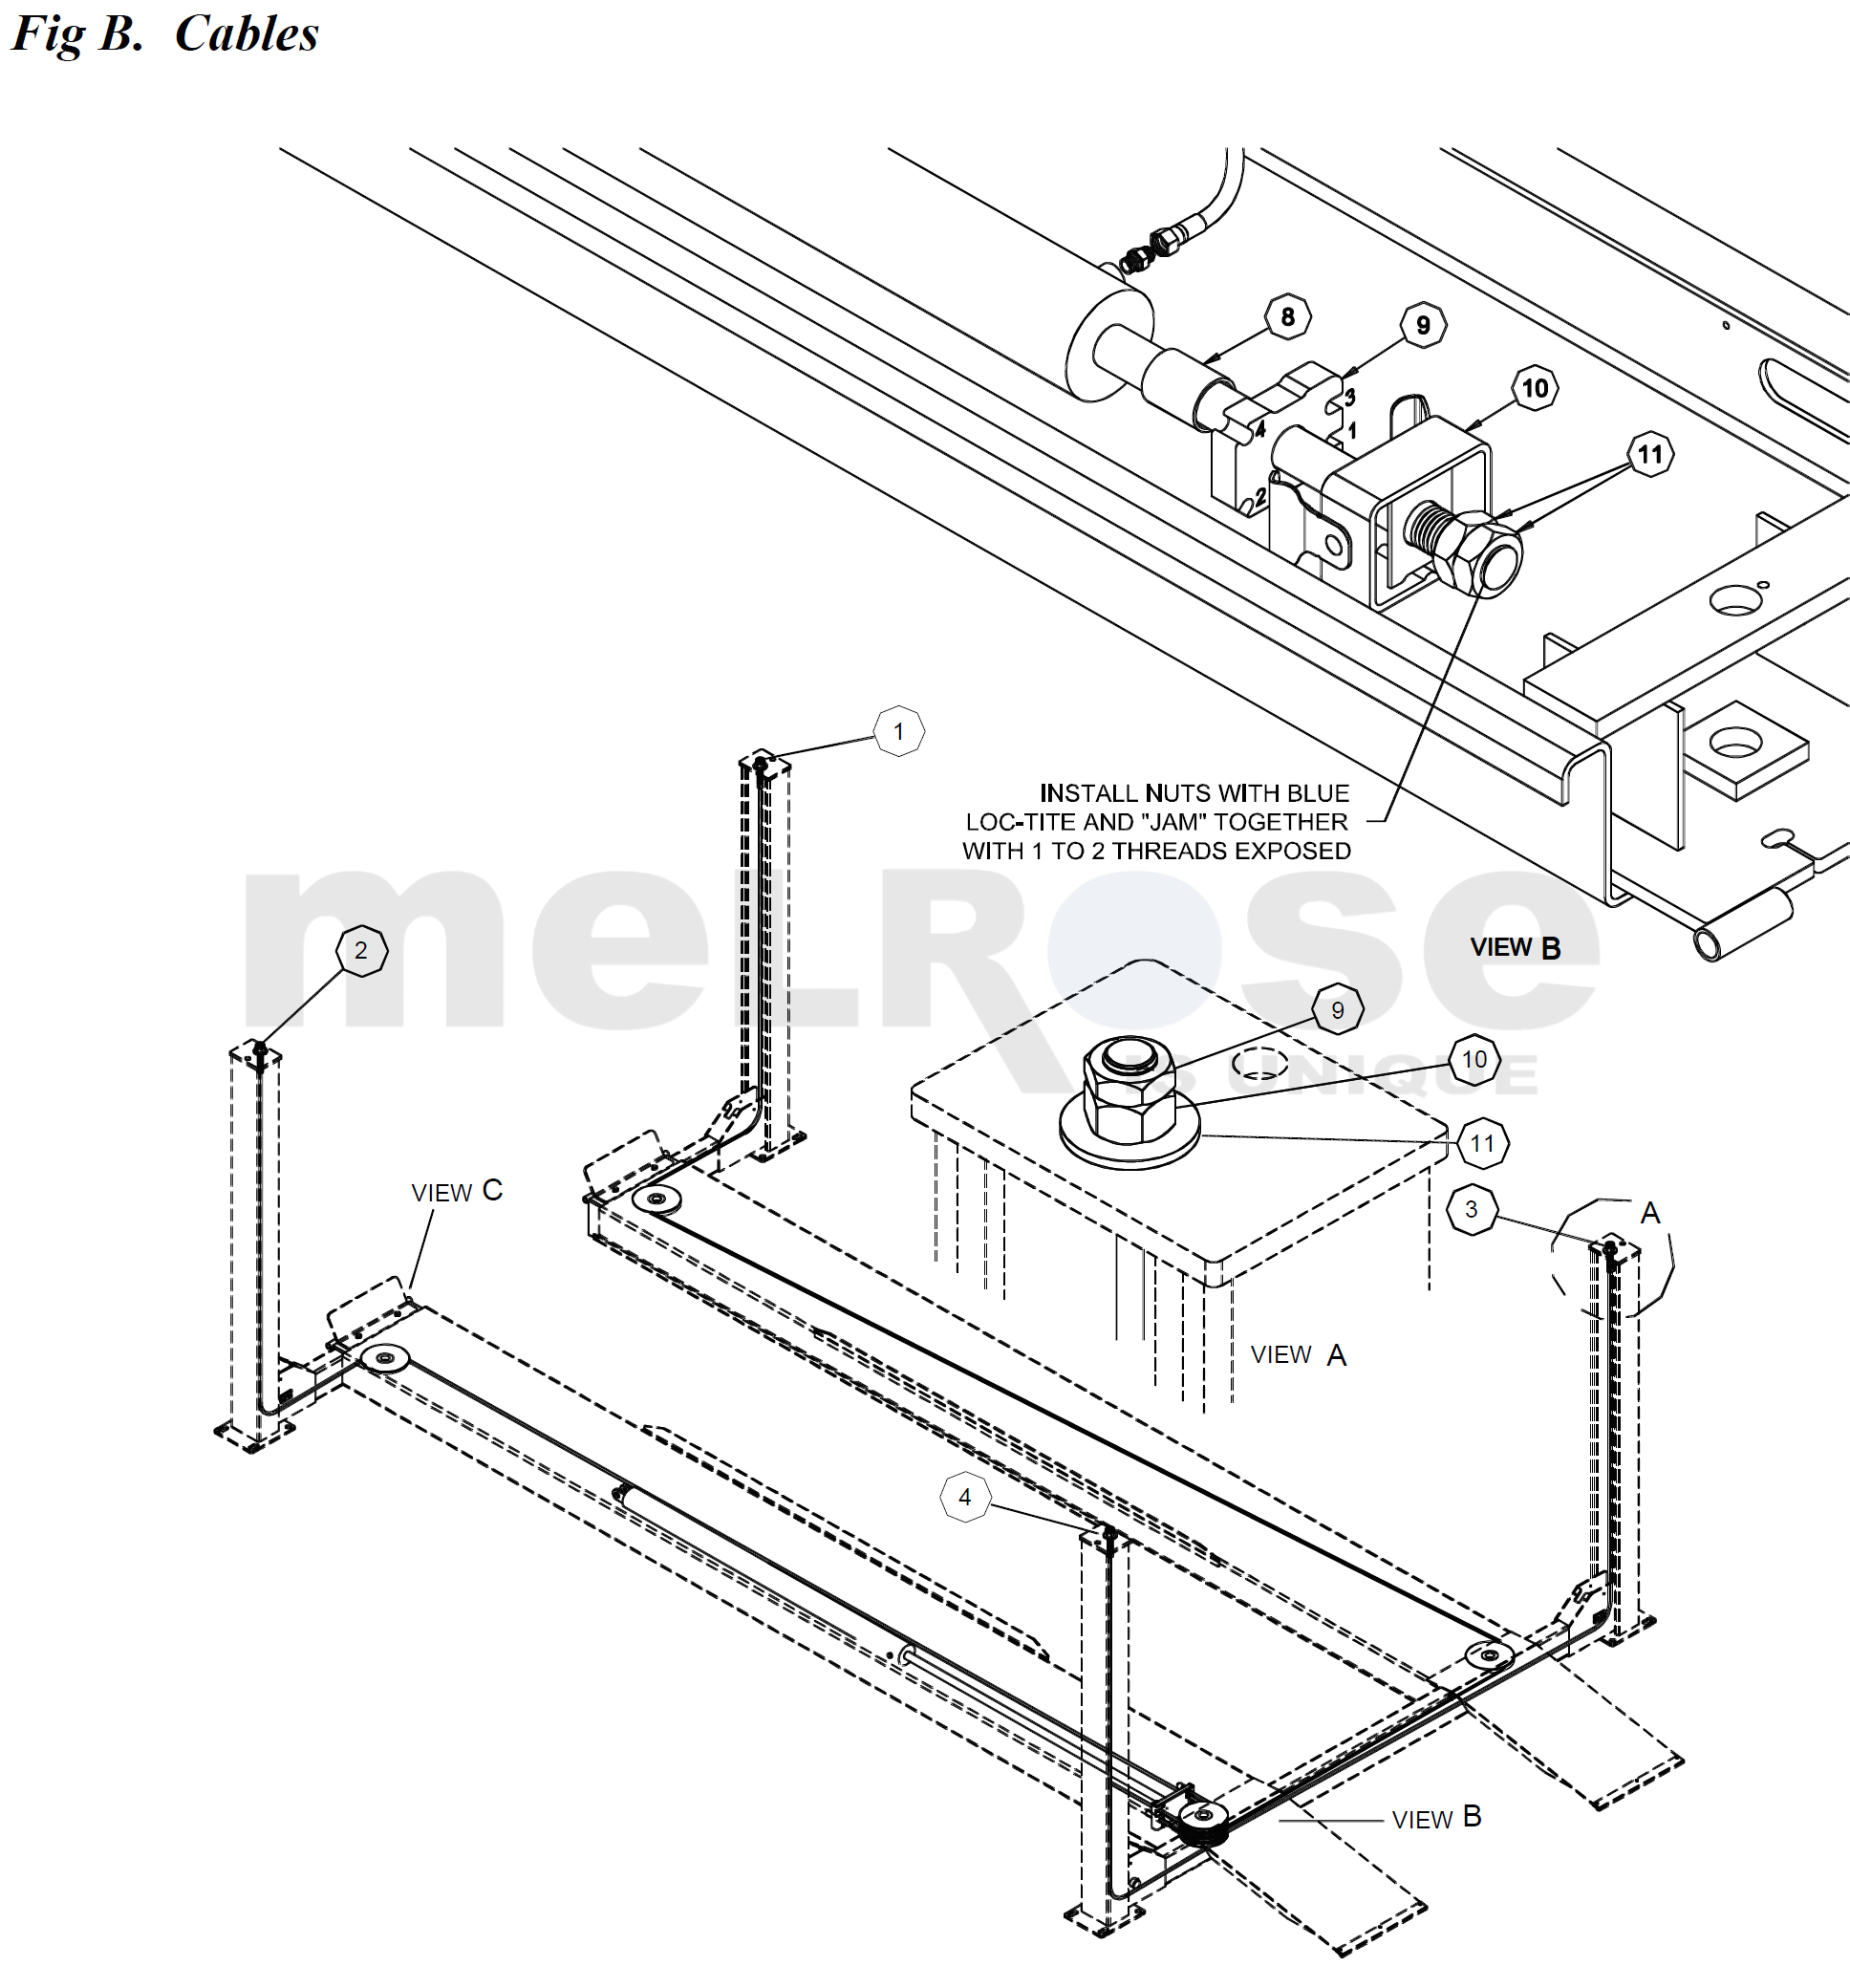 40000-open-front-cables-diagram-marked.jpg